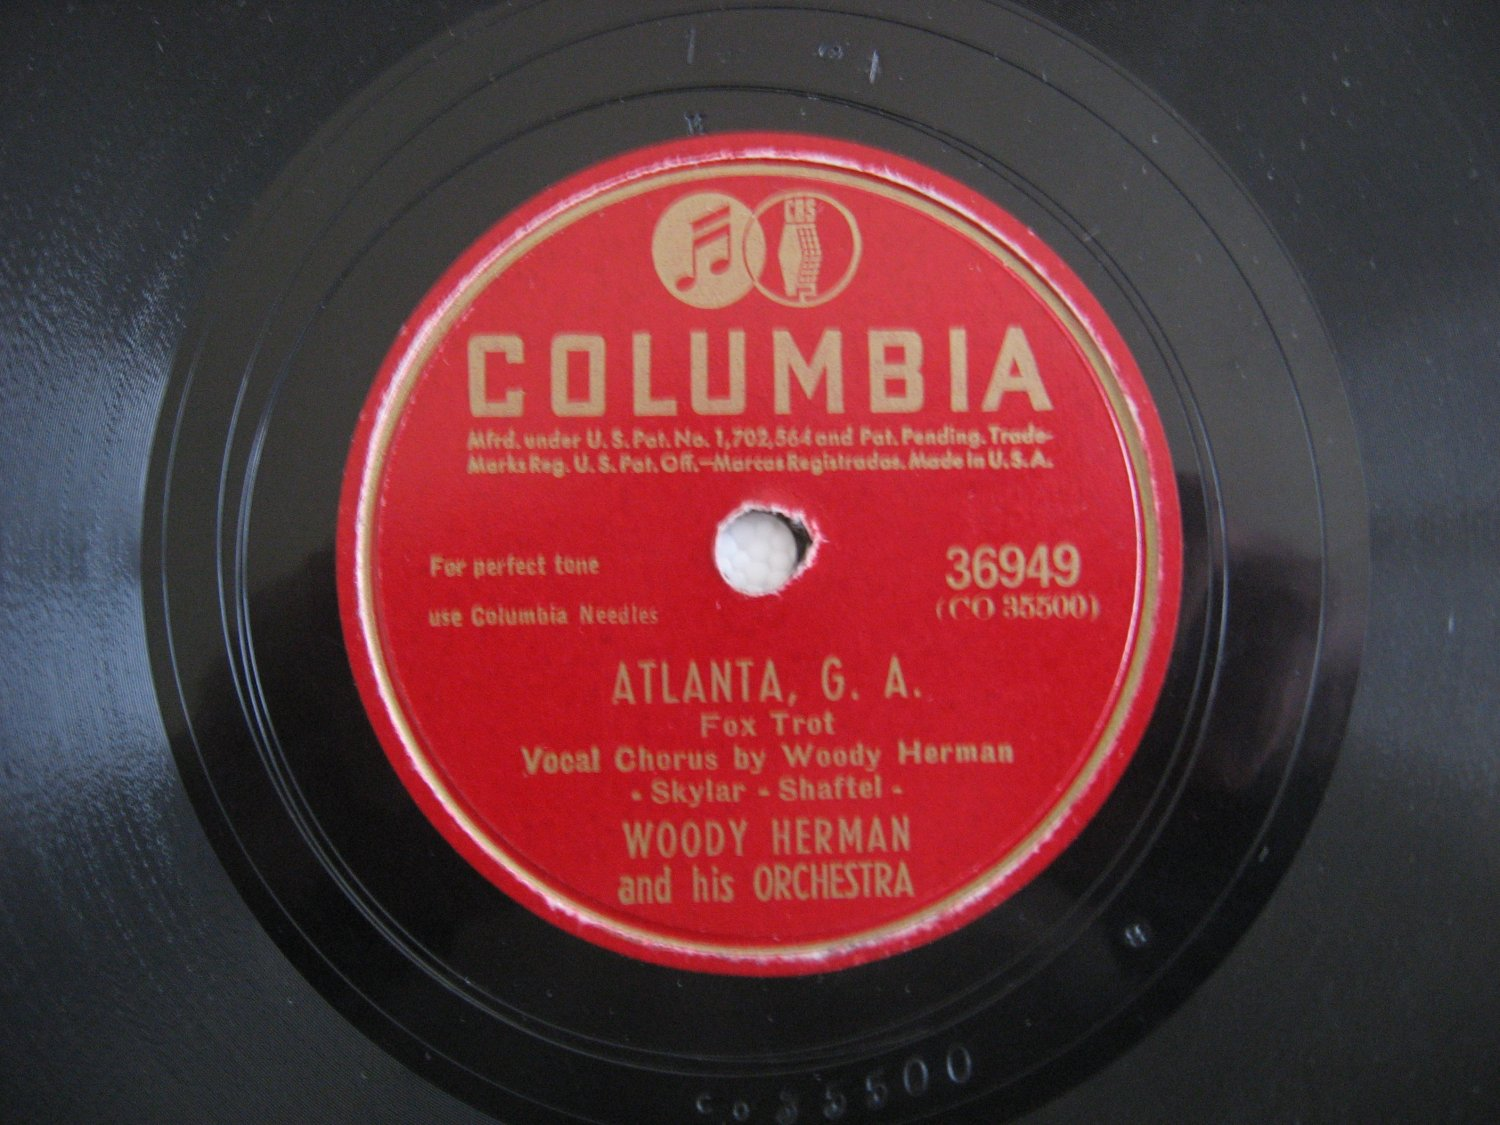 Woody Herman and his Orchestra - Wild Root  (Vinyl Record)